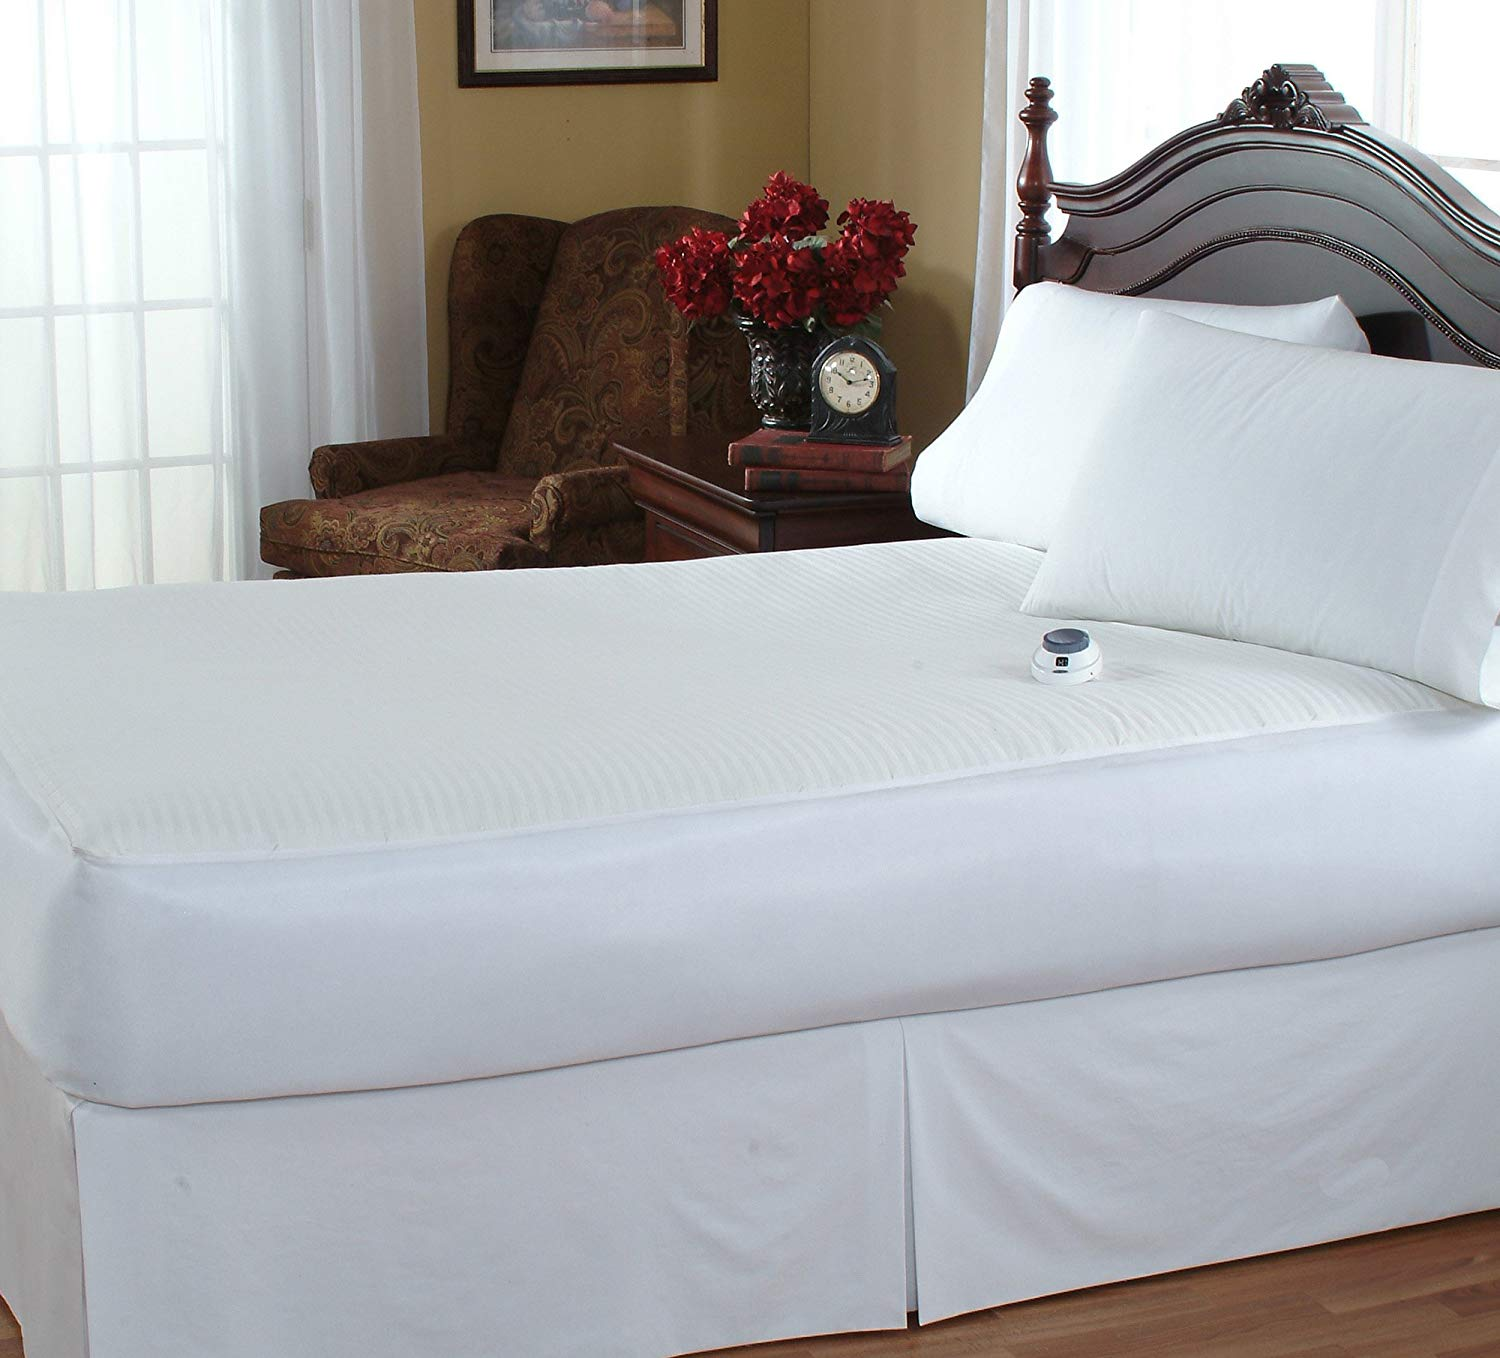 SoftHeat Waterproof & Stain Repellant Low-Voltage Heated Twin Mattress Pad, White